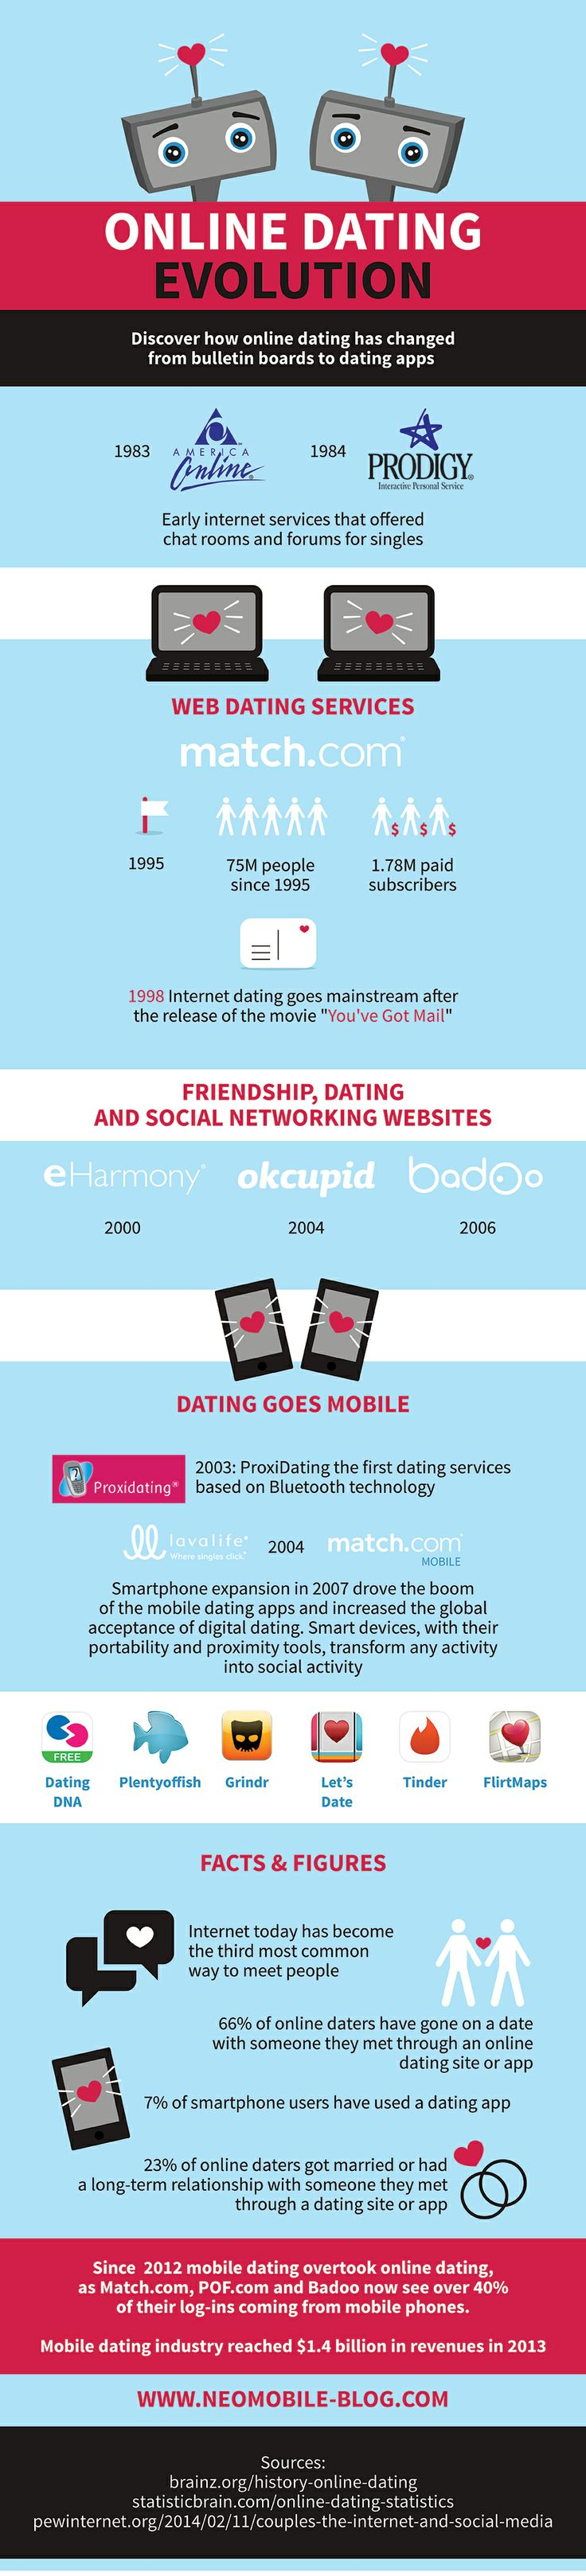 How dating apps have changed society